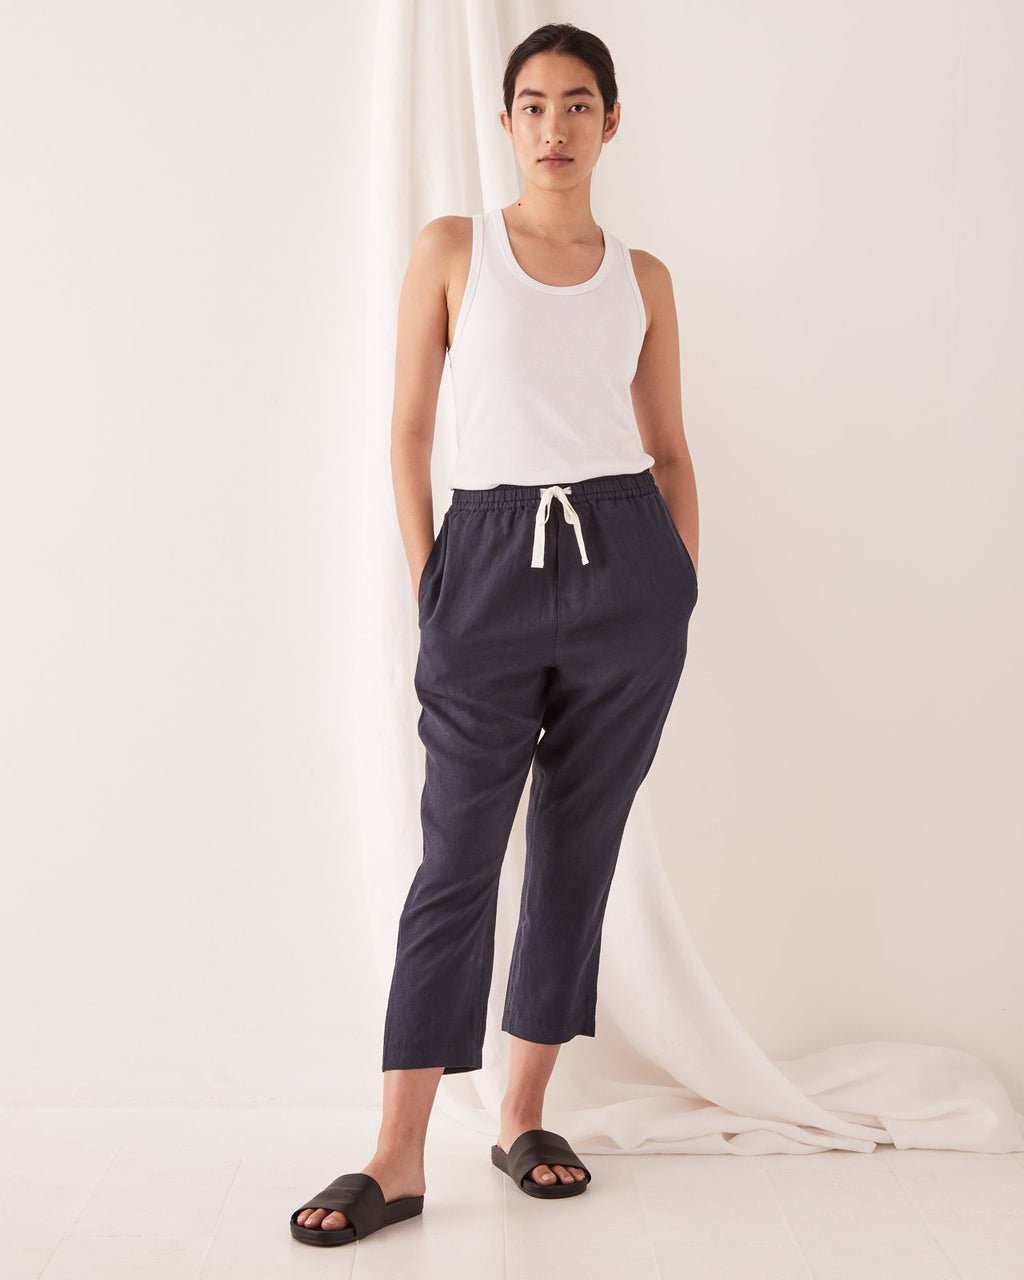 Assembly Label Anya Linen Pants - True Navy